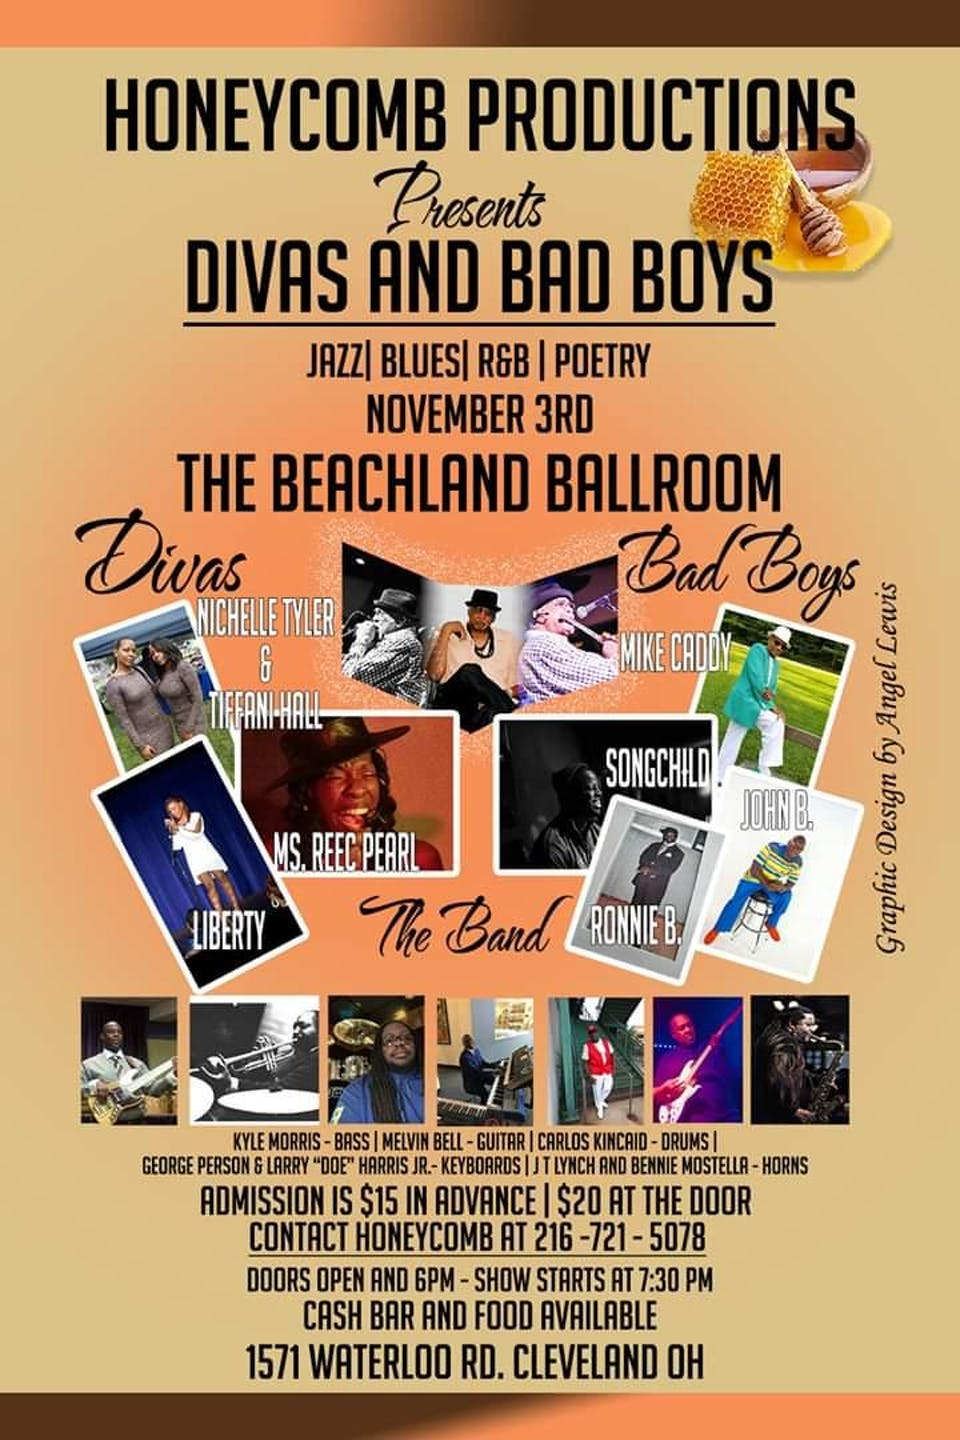 Divas and Bad Boys feat. Nichelle Tyler & Tiffani Hall, Mike Caddy, & more